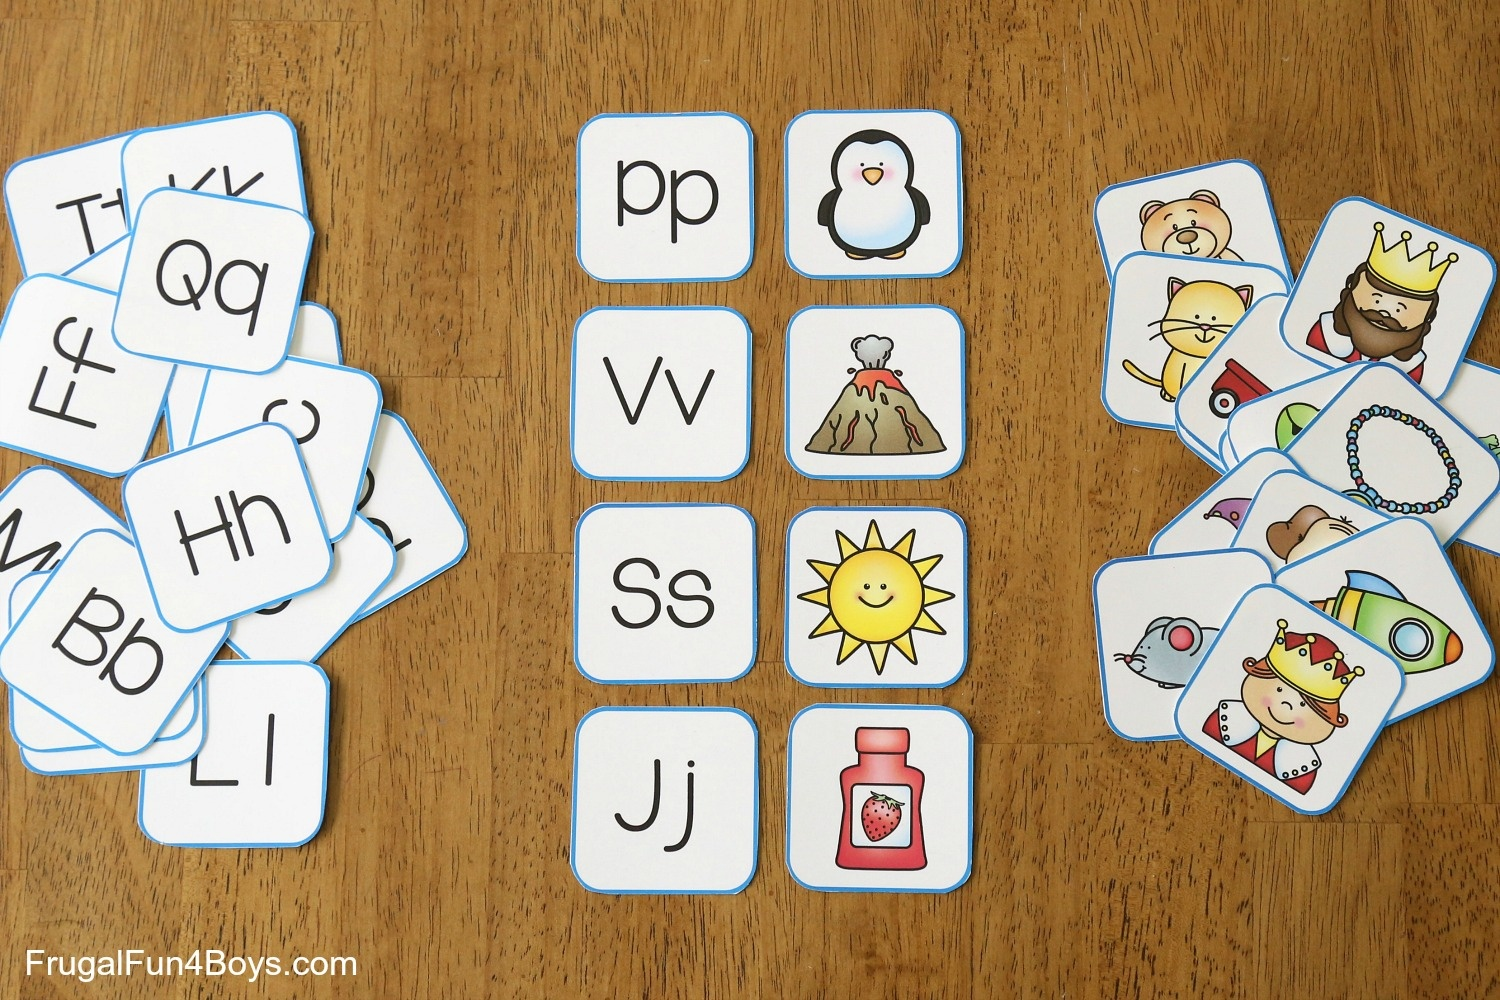 Printable Alphabet Memory Game Cards - Frugal Fun For Boys And Girls - Free Printable Alphabet Games